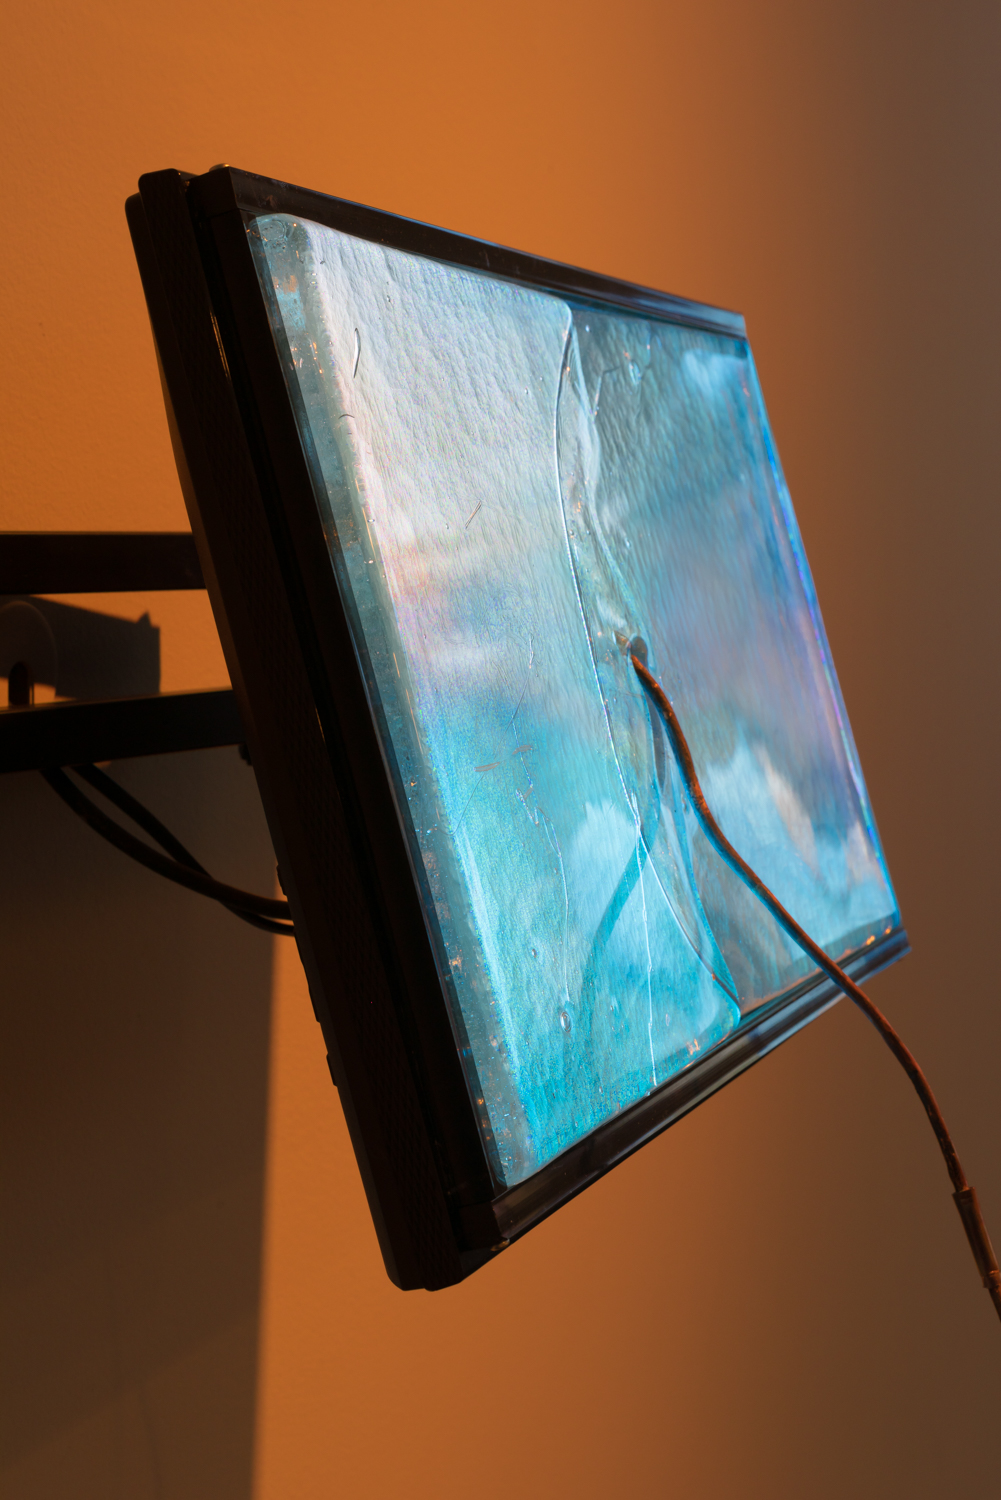 Conduct Matters, Hammer Project, Hammer Museum, Los Angeles. Visible: Ground, 2017, hand-cast glass, copper wire, HD video (color, sound), and monitor with wall mount, 19 x12 monitor extending about 16 inches out from wall.